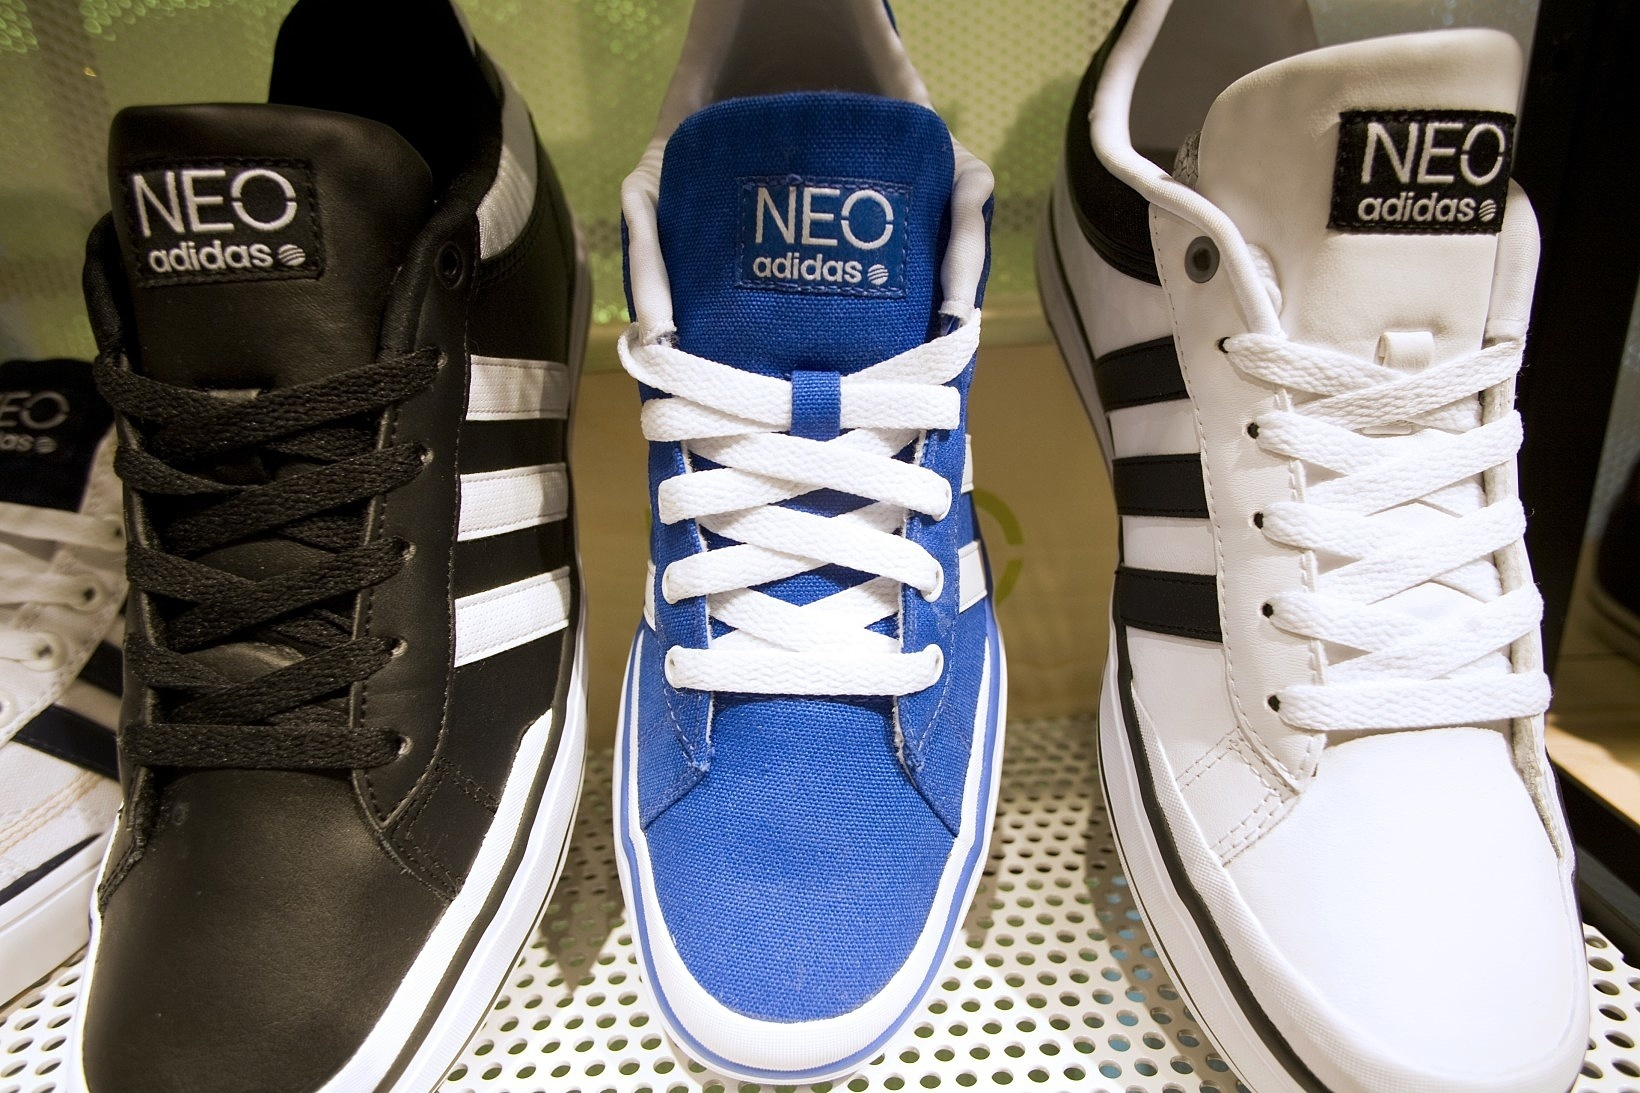 Projects Shop Adidas Neo Store Tauentzienstrasse